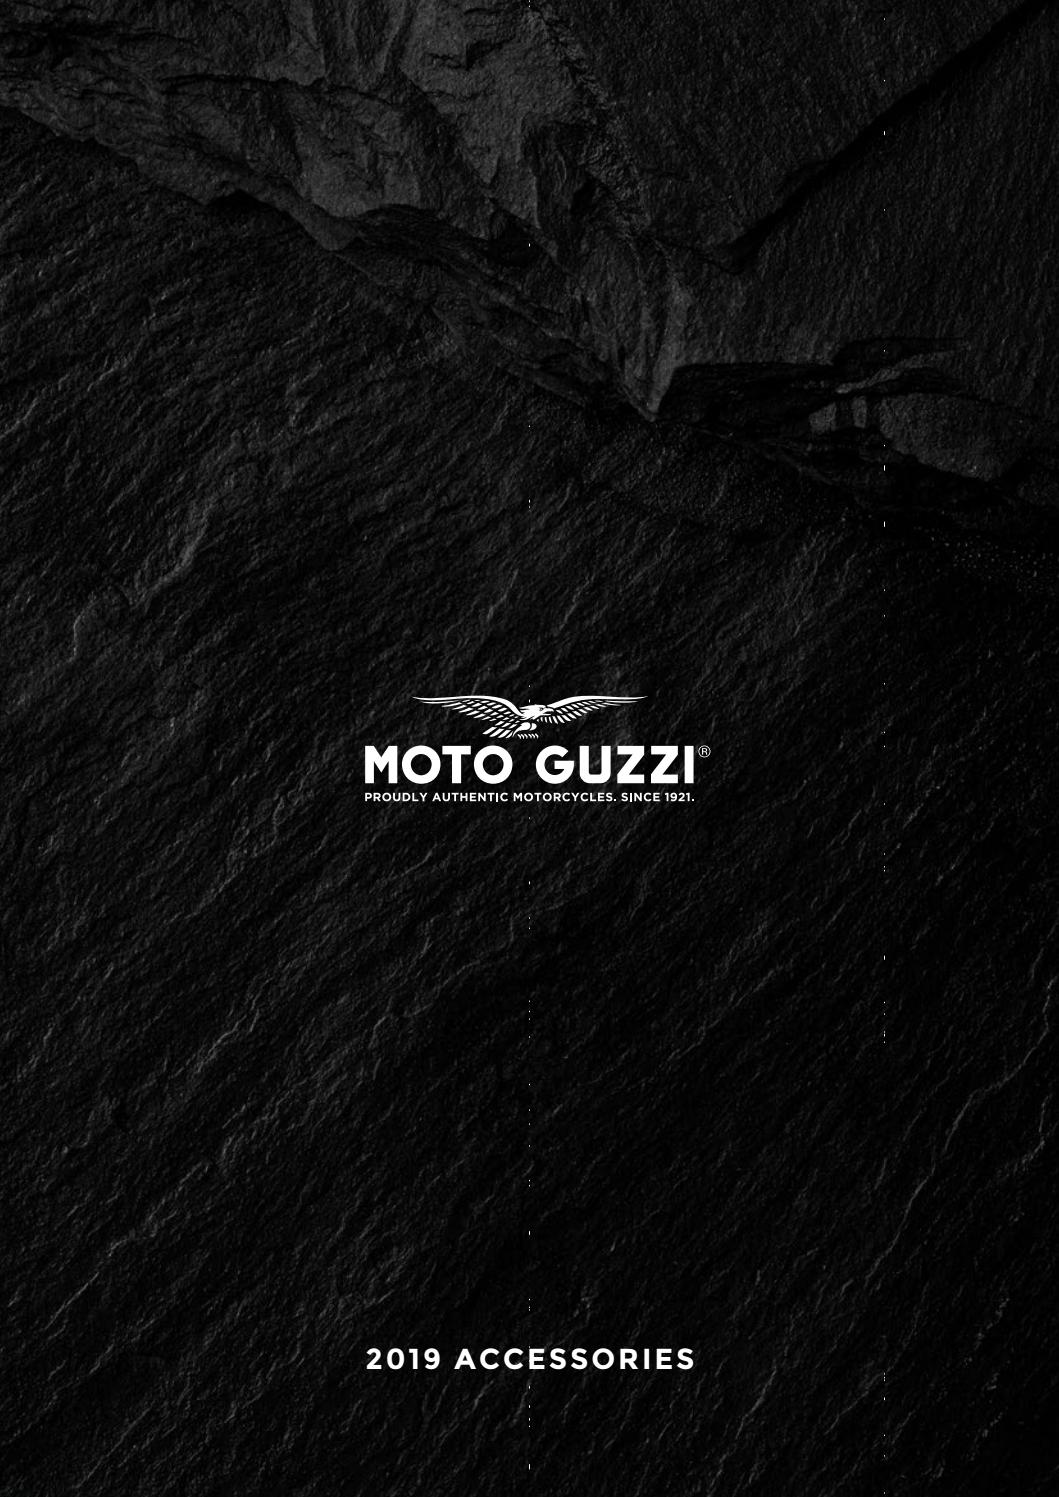 Cuscino Sella Gel per Moto Guzzi V7 III Rough//Carbon nero